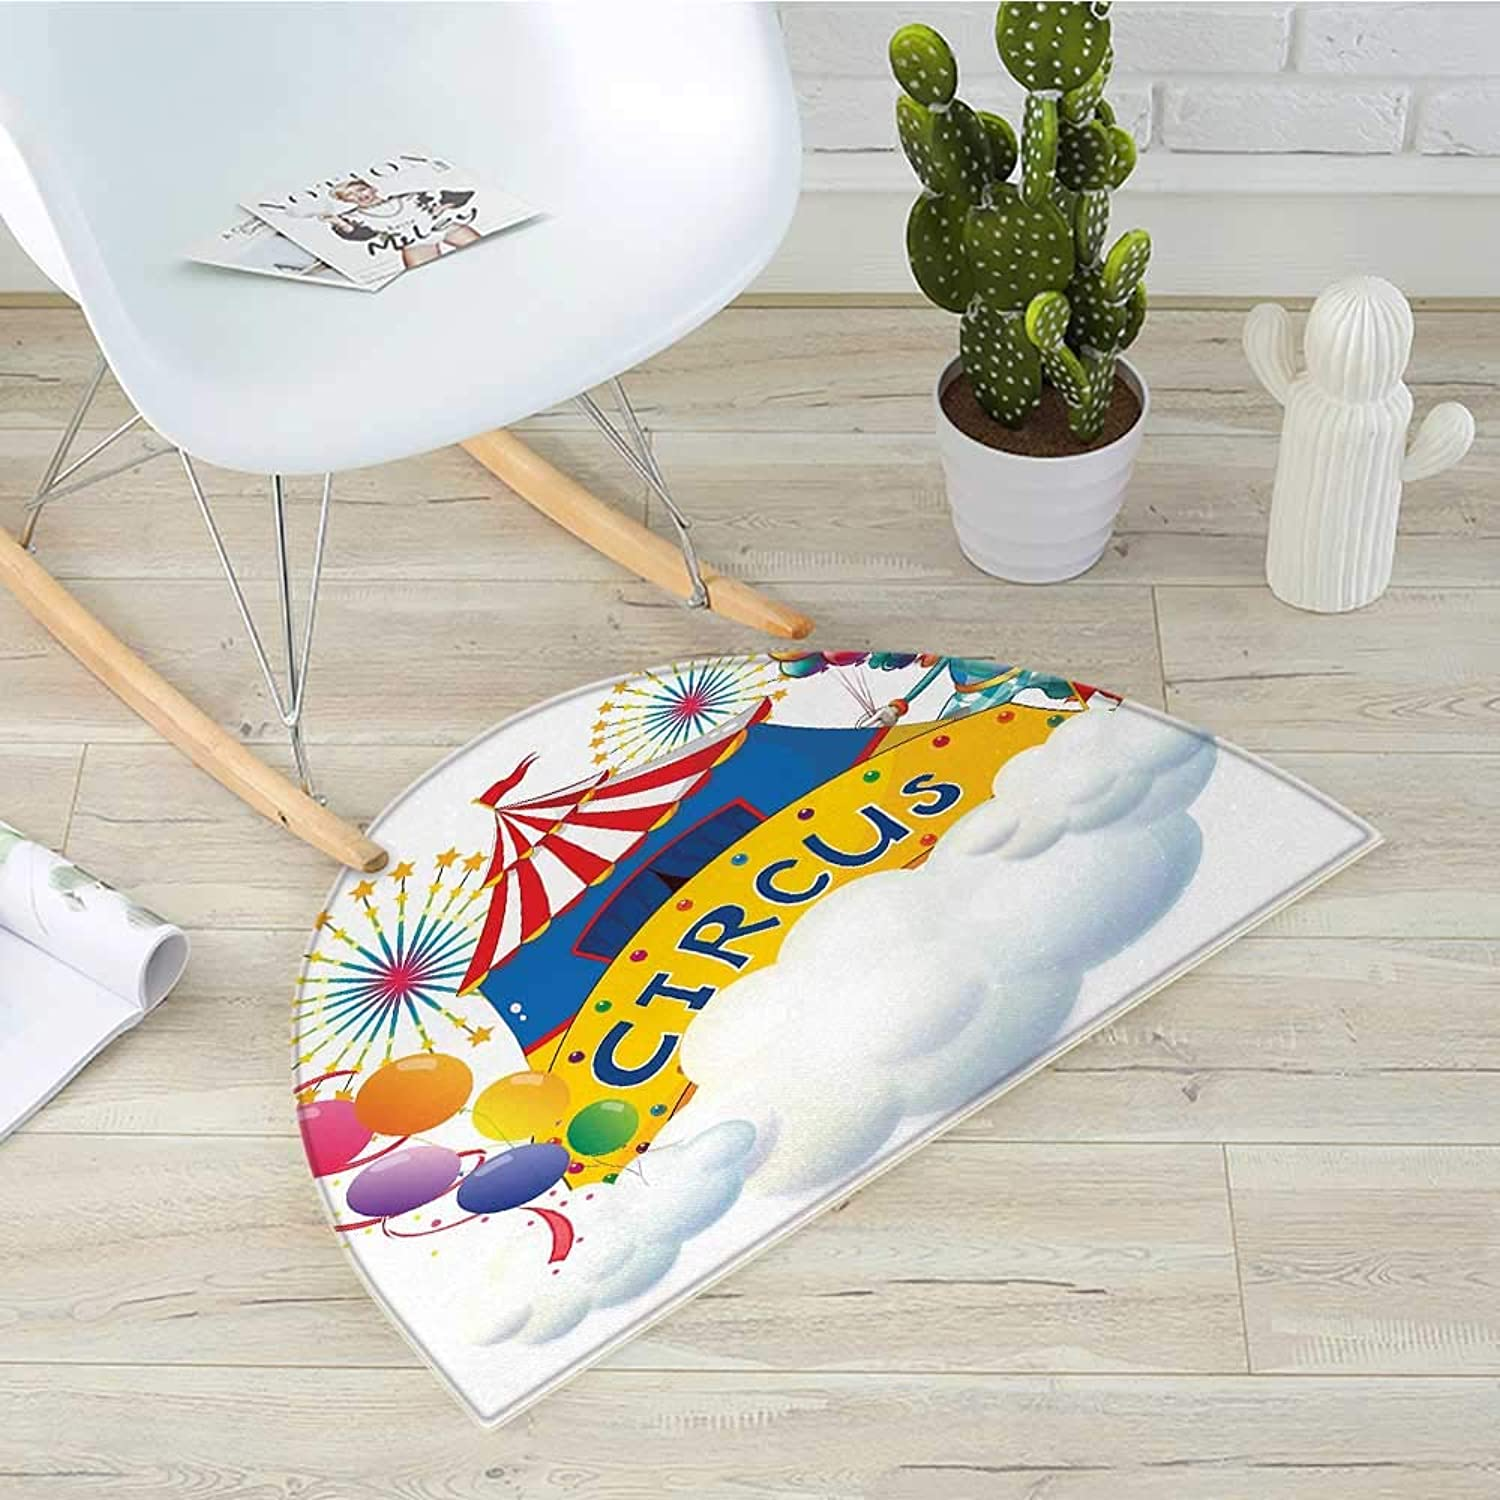 Circus Decor Semicircle Doormat Illustration of a Circus Above The Clouds Fireworks Entertainer Comedian Halfmoon doormats H 35.4  xD 53.1  Multicolor